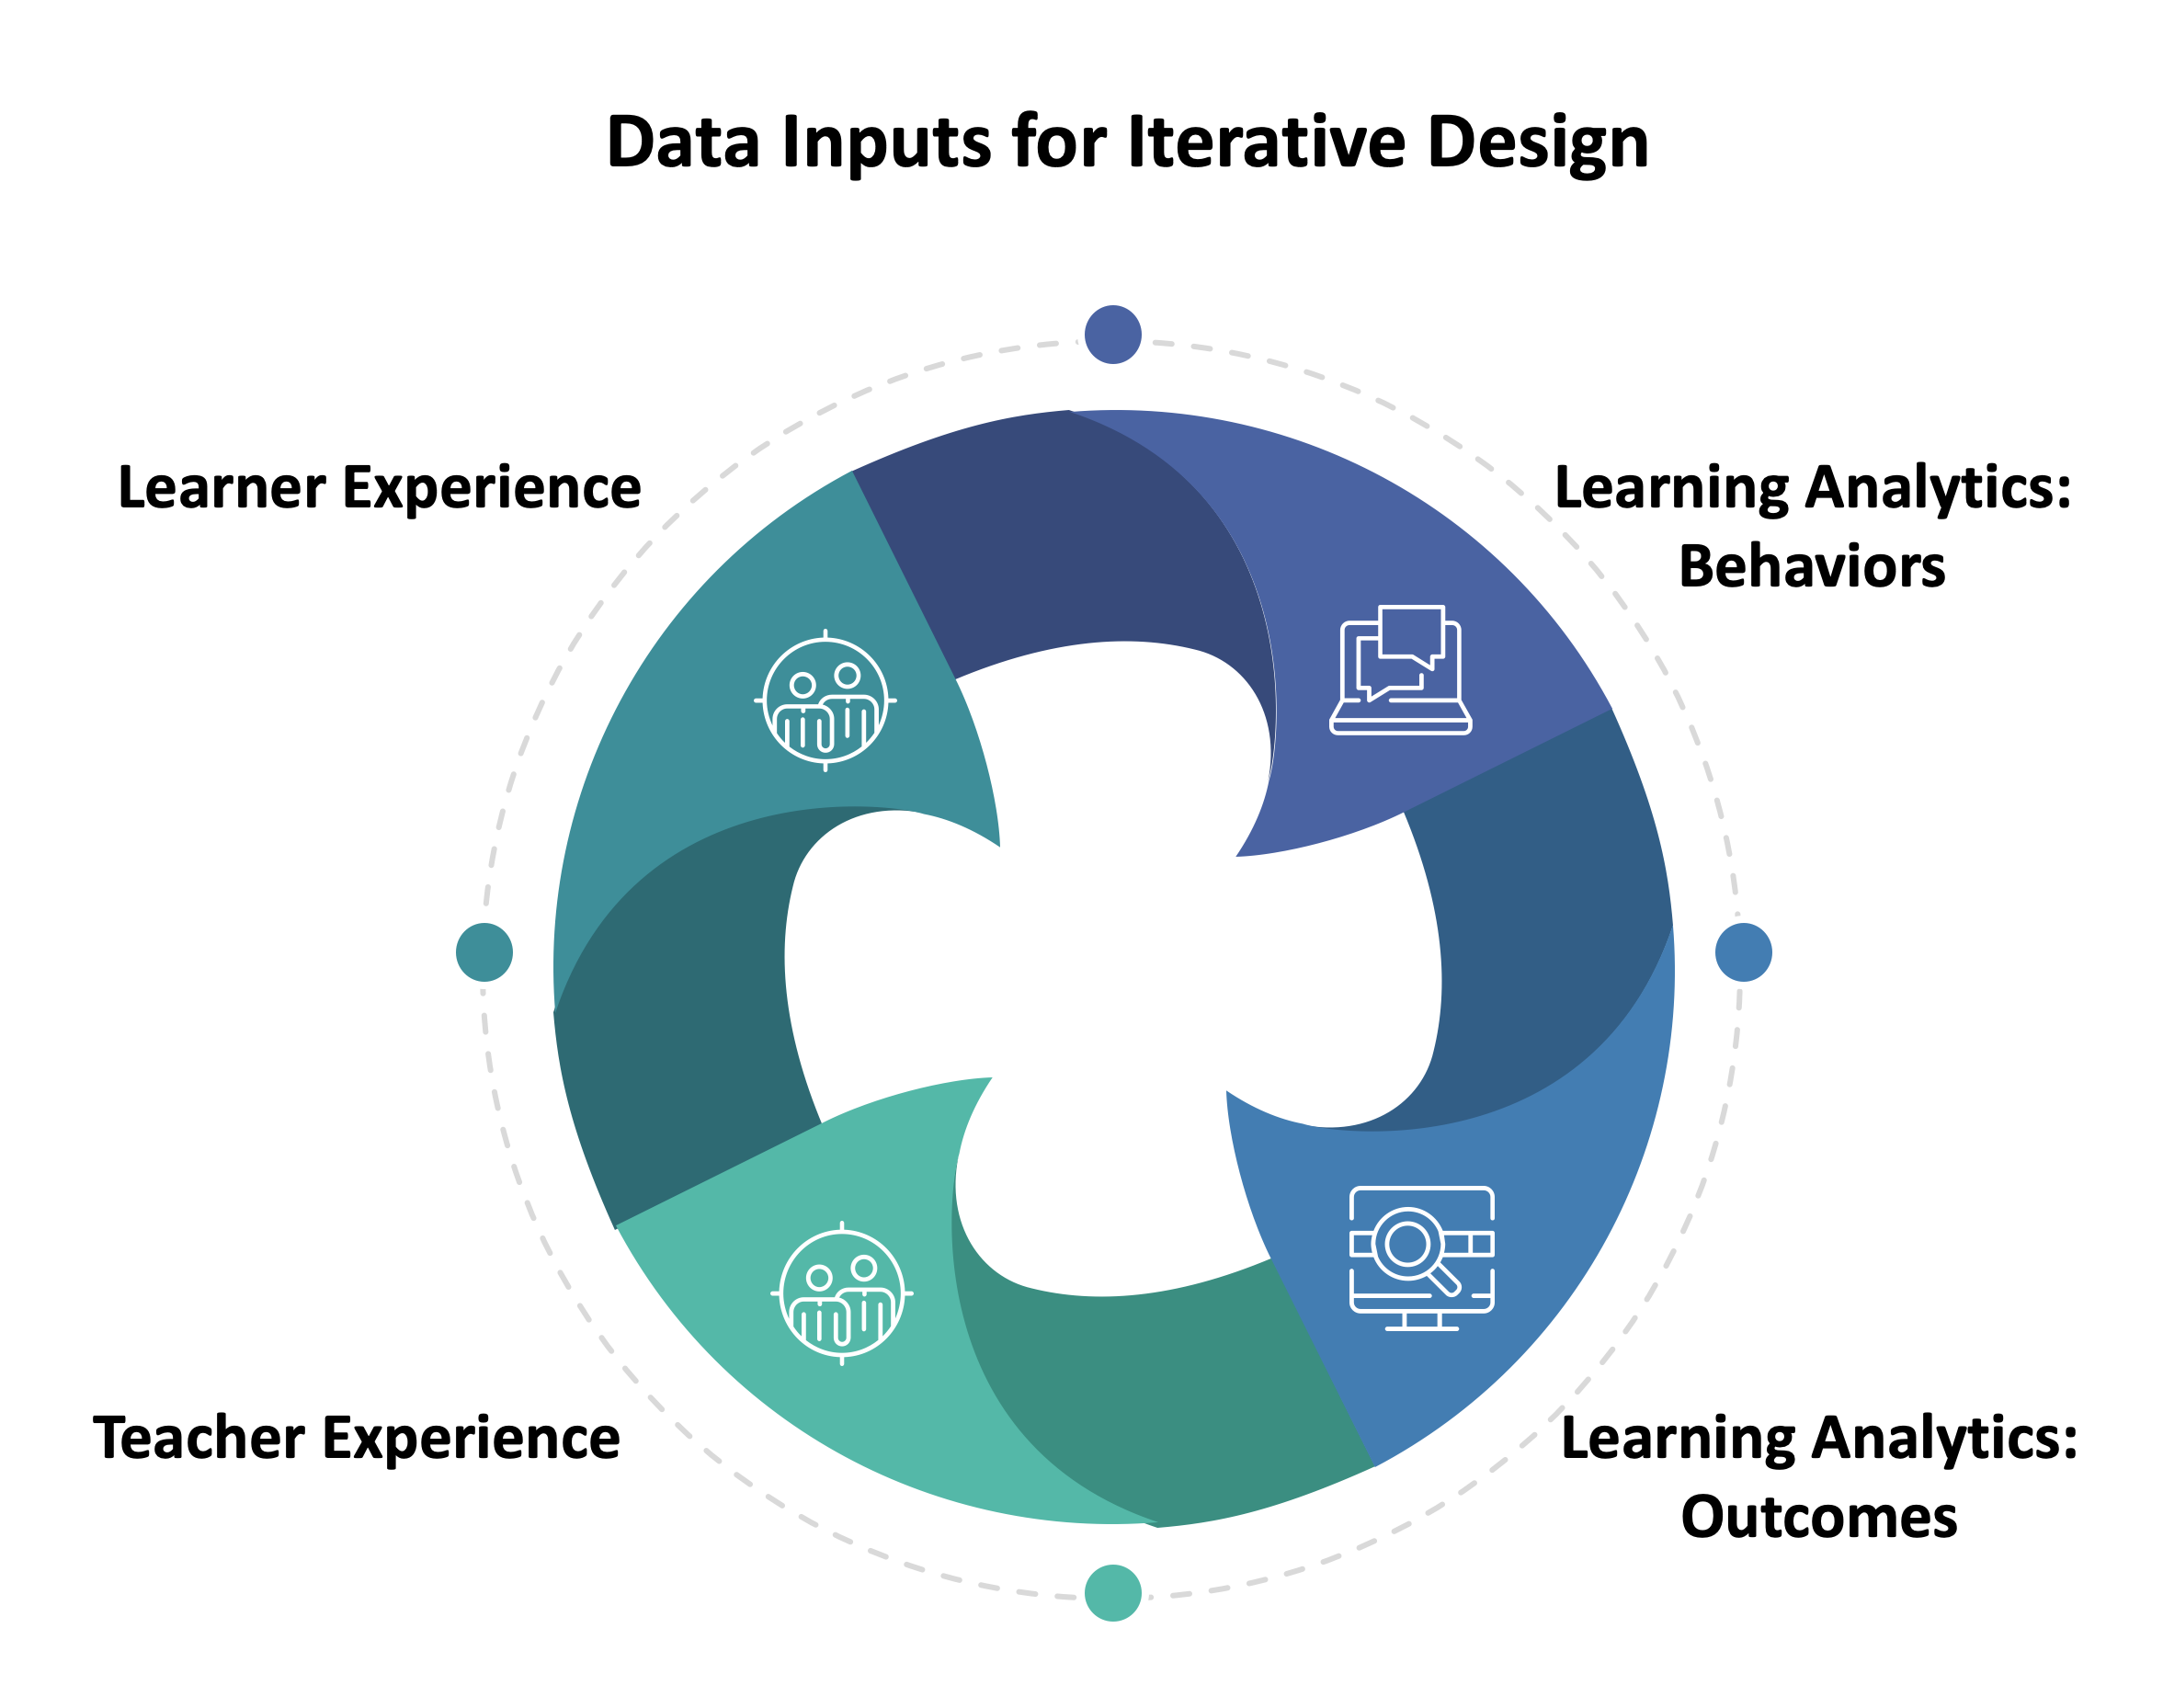 Image of the Data Inputs for Iterative Design